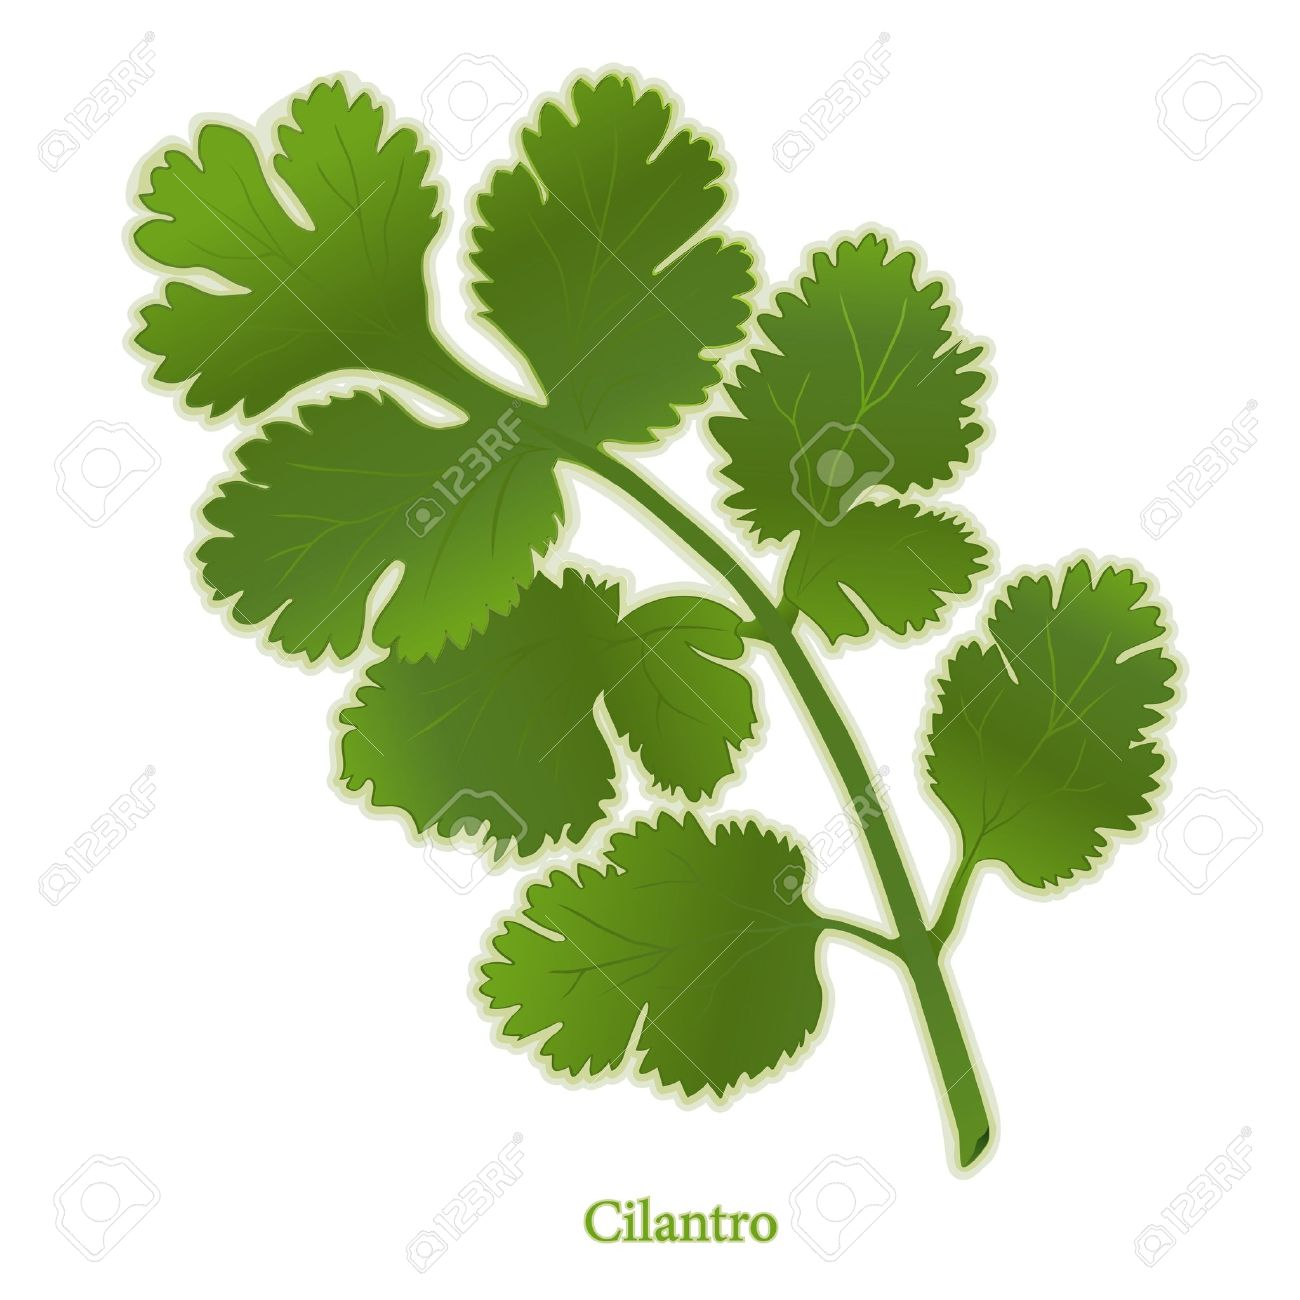 Cilantro Herb, Aromatic Leaves Used To Flavor Mexican, Latin.